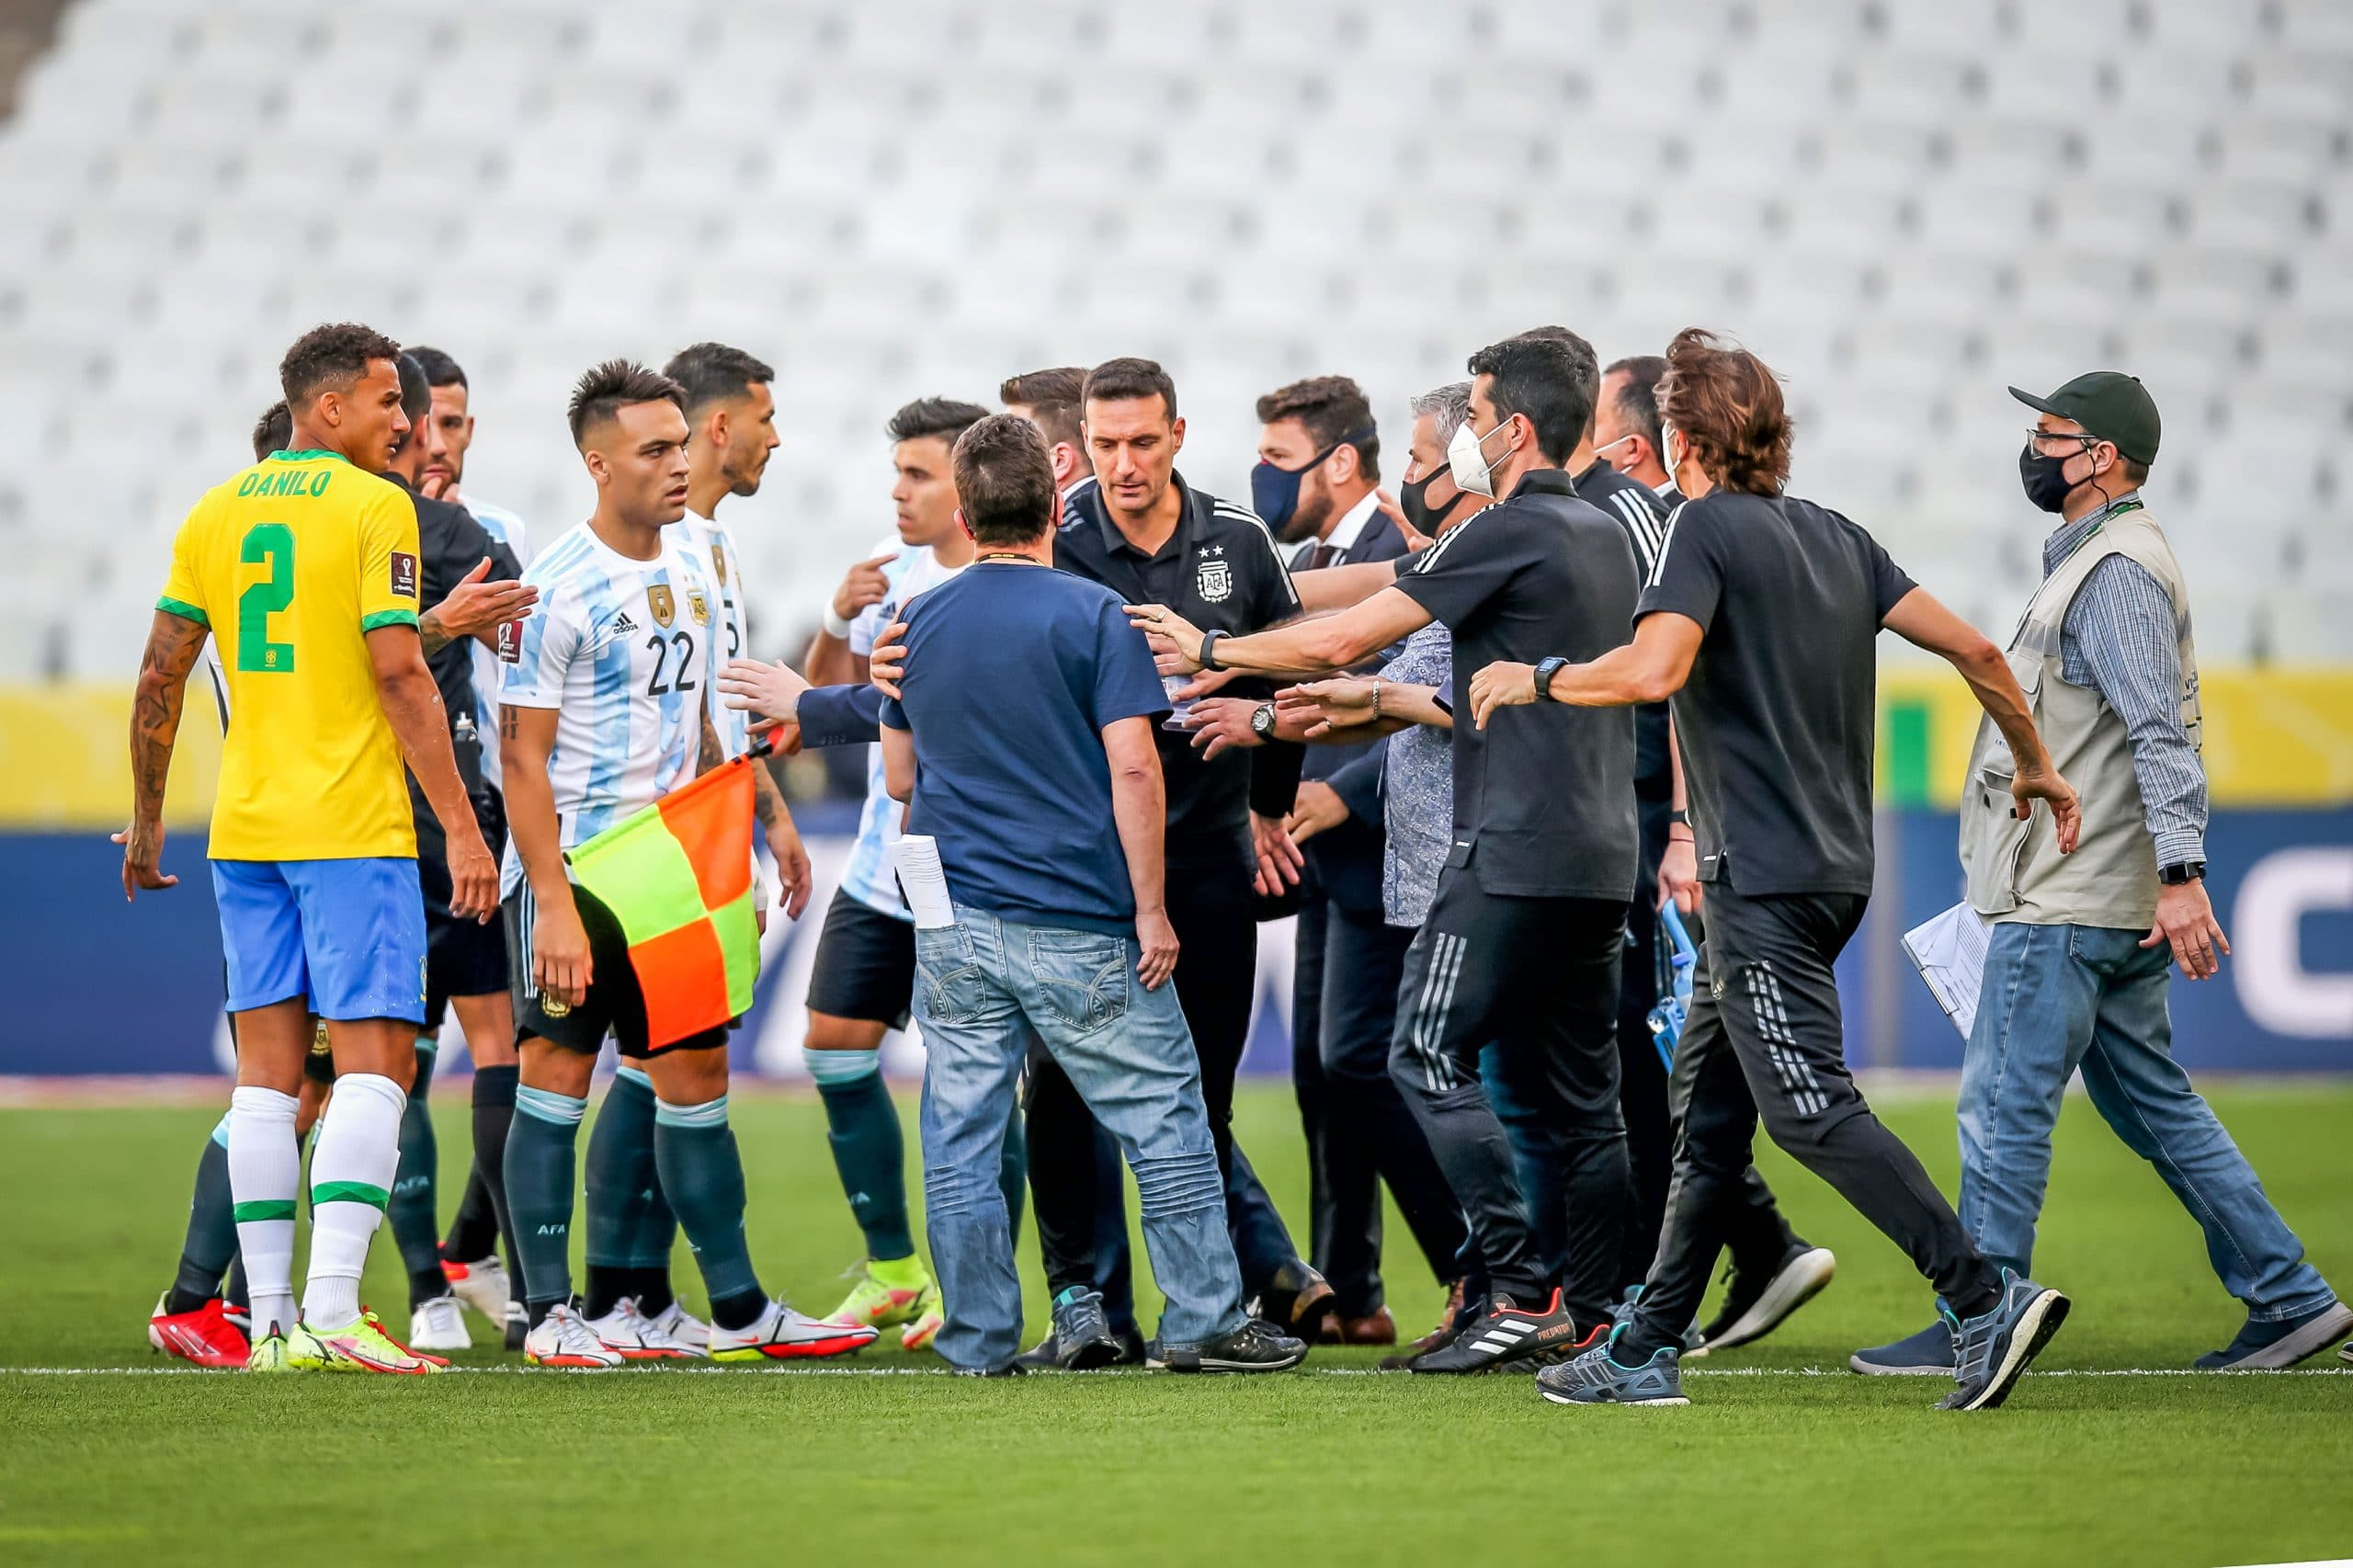 COVID-19: Brazil vs Argentina WCQ Suspended After Health Officials Storm Pitch To Remove Four Players